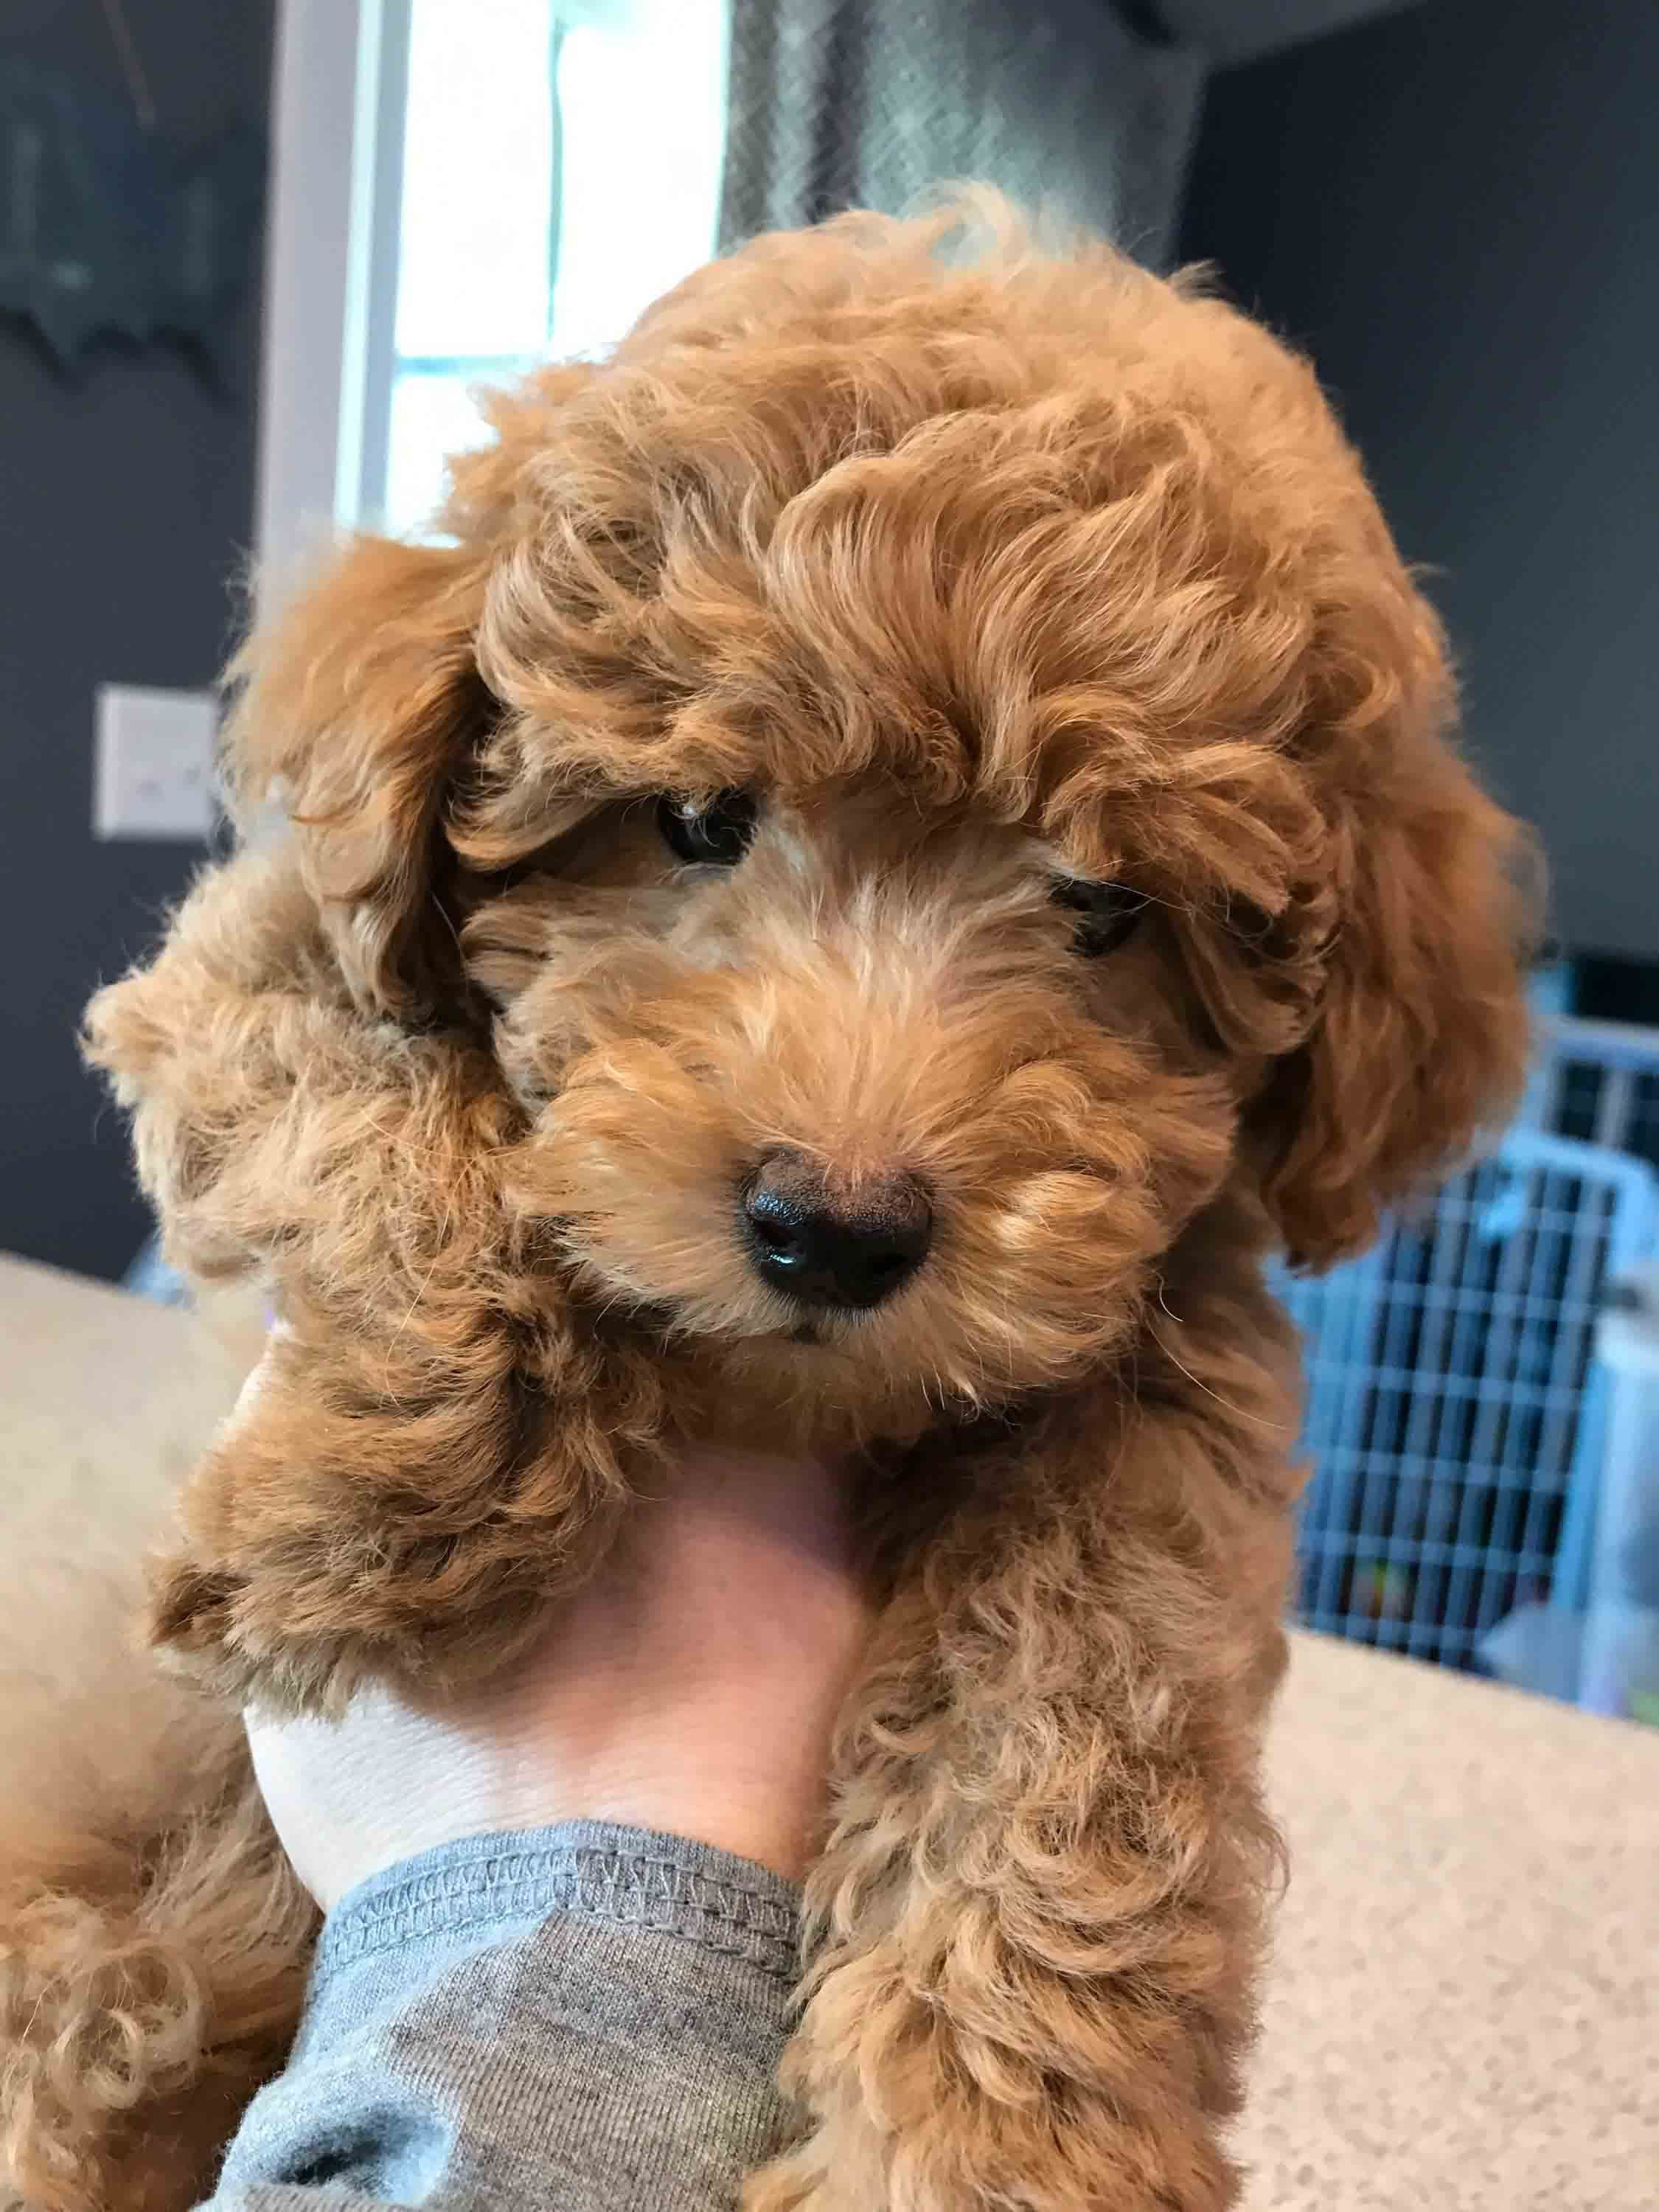 Teacup Goldendoodle Puppies Toy Goldendoodle Puppies Hypoallergenic Dogs Teddy Bear Goldendoodle Pup Goldendoodle Puppy Toy Goldendoodle Teacup Goldendoodle